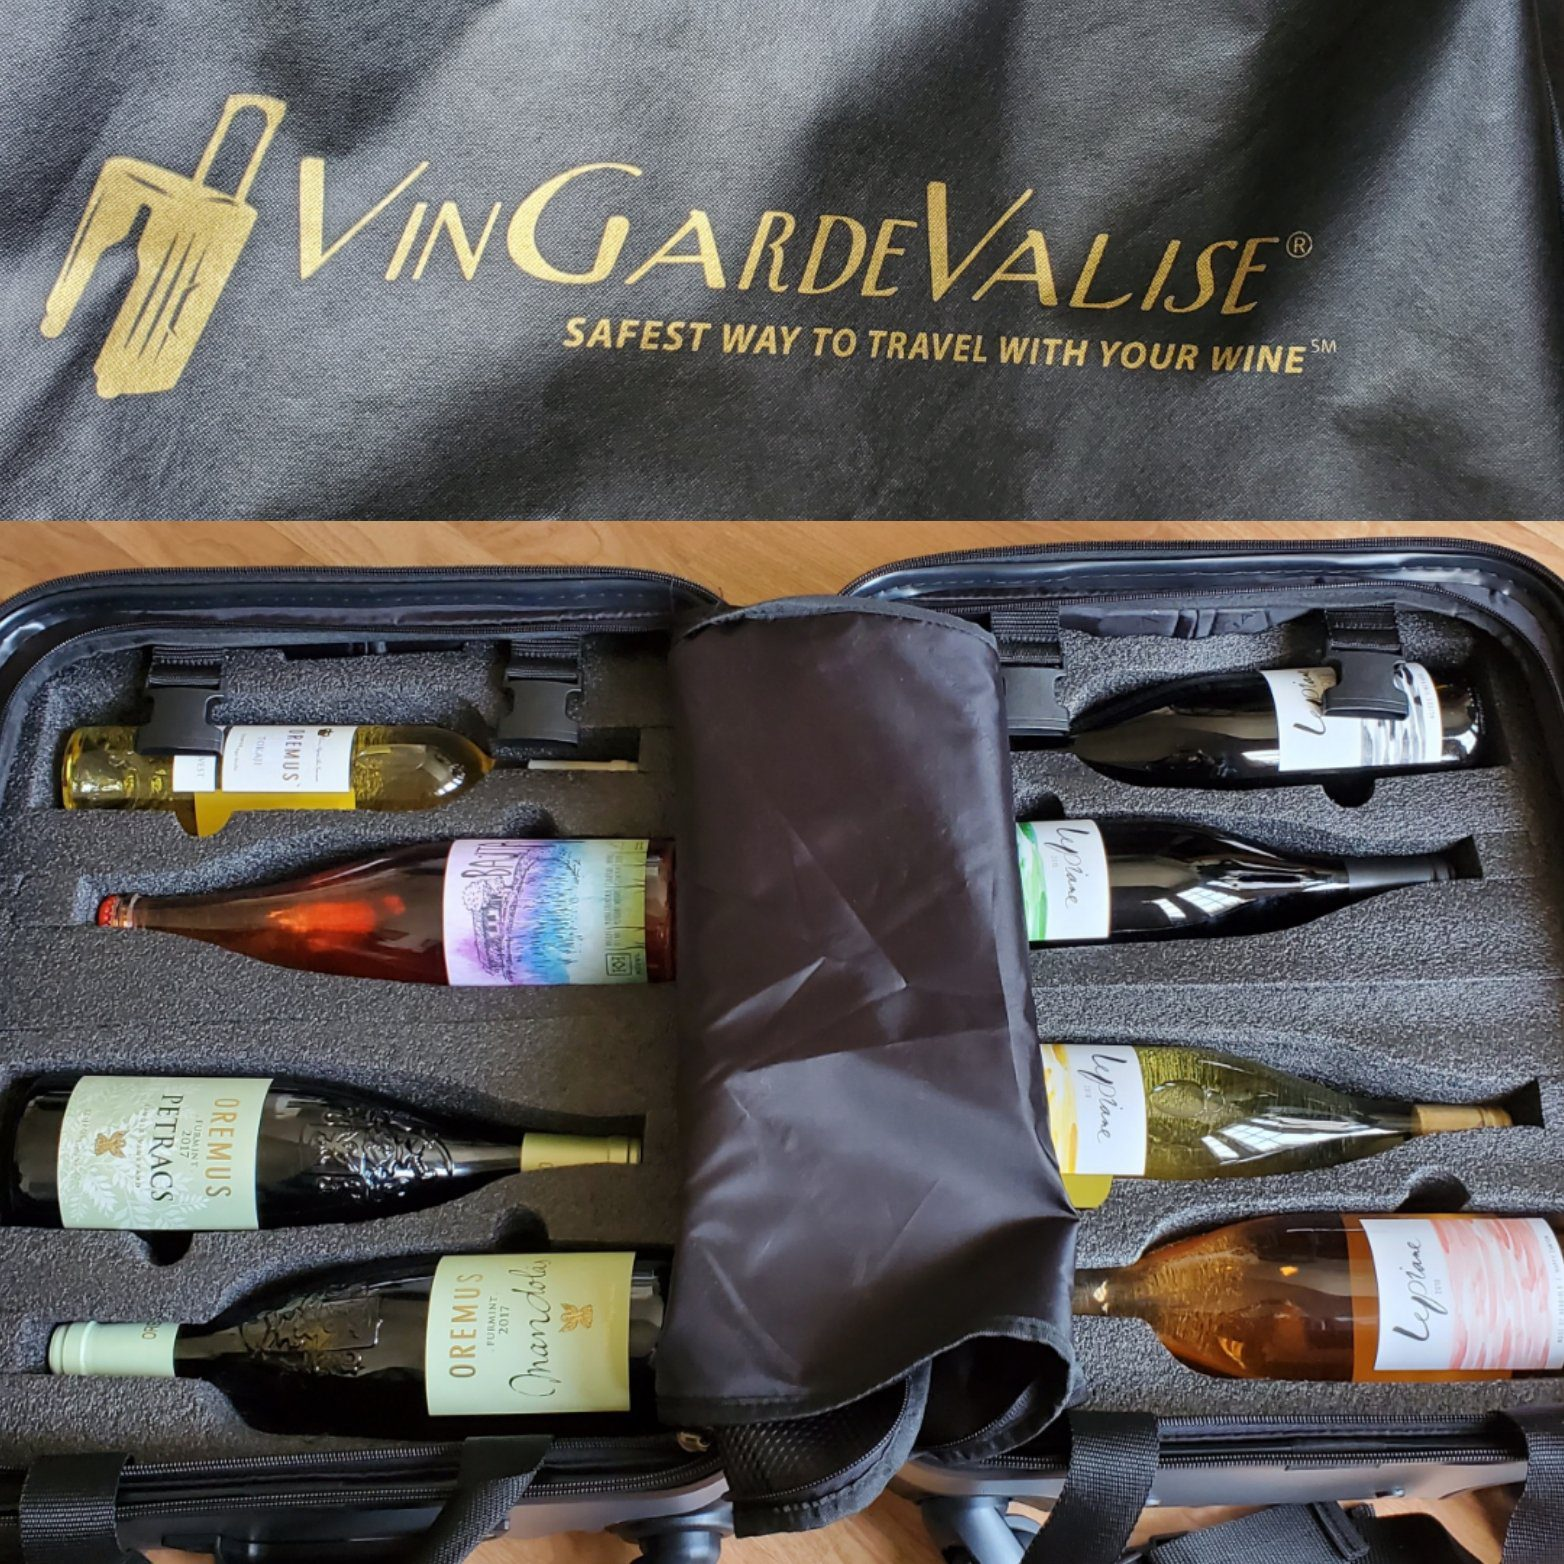 Please The Palate Pick of the Week: Traveling with Wine with the VinGardeValise Petite from FlyWithWine